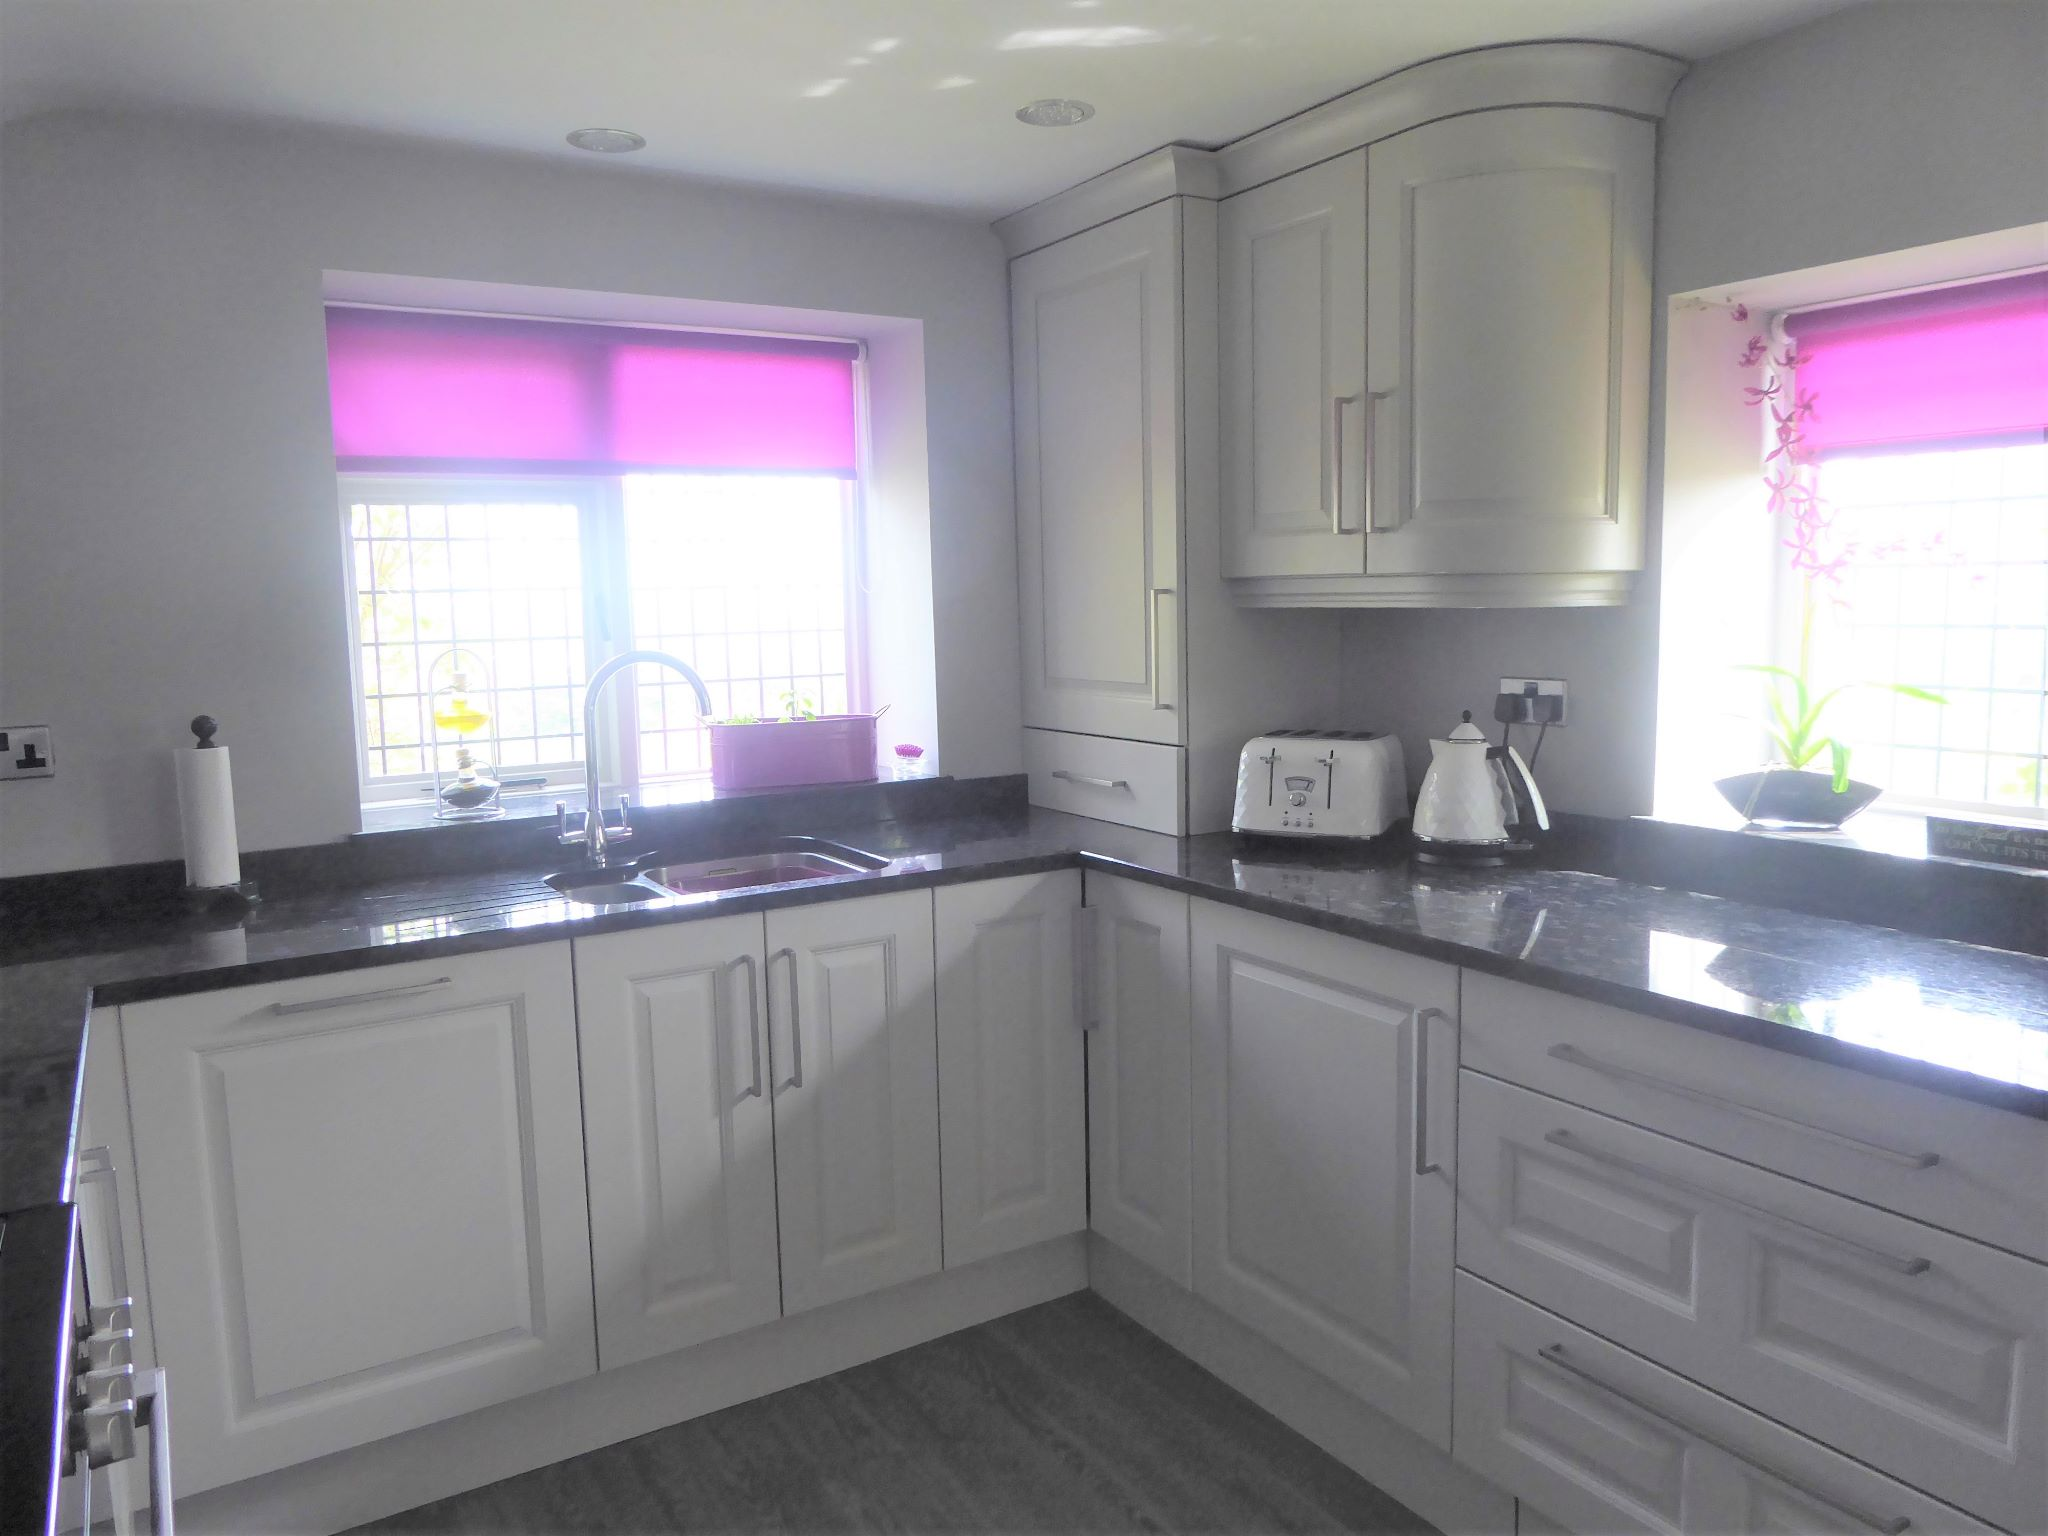 2 bedroom cottage house SSTC in Abergele - Photograph 10